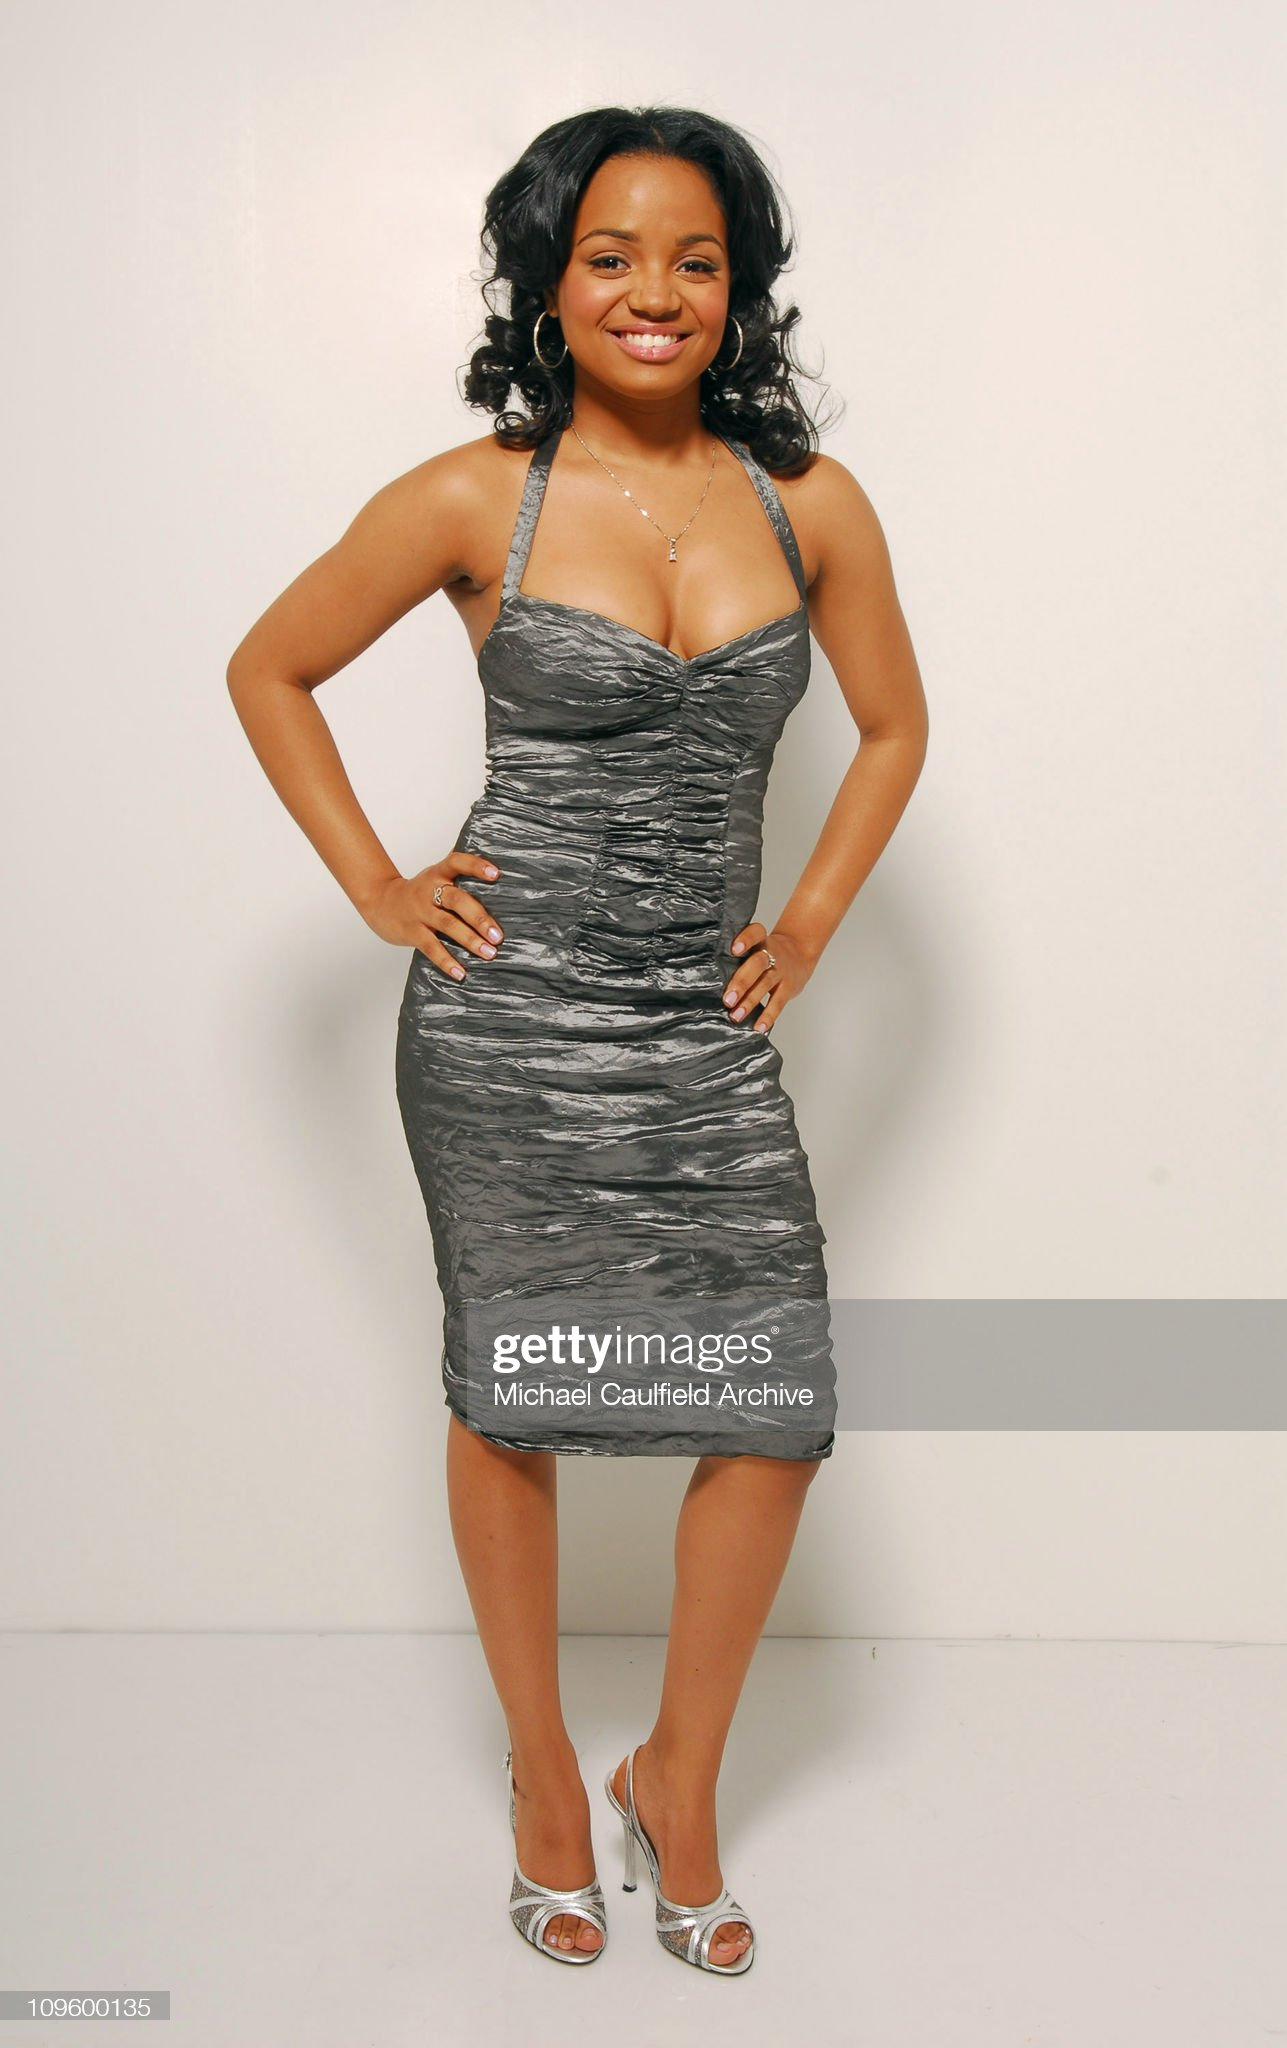 ¿Cuánto mide Kyla Pratt? - Real height Kyla-pratt-during-the-37th-annual-naacp-image-awards-gallery-at-in-picture-id109600135?s=2048x2048